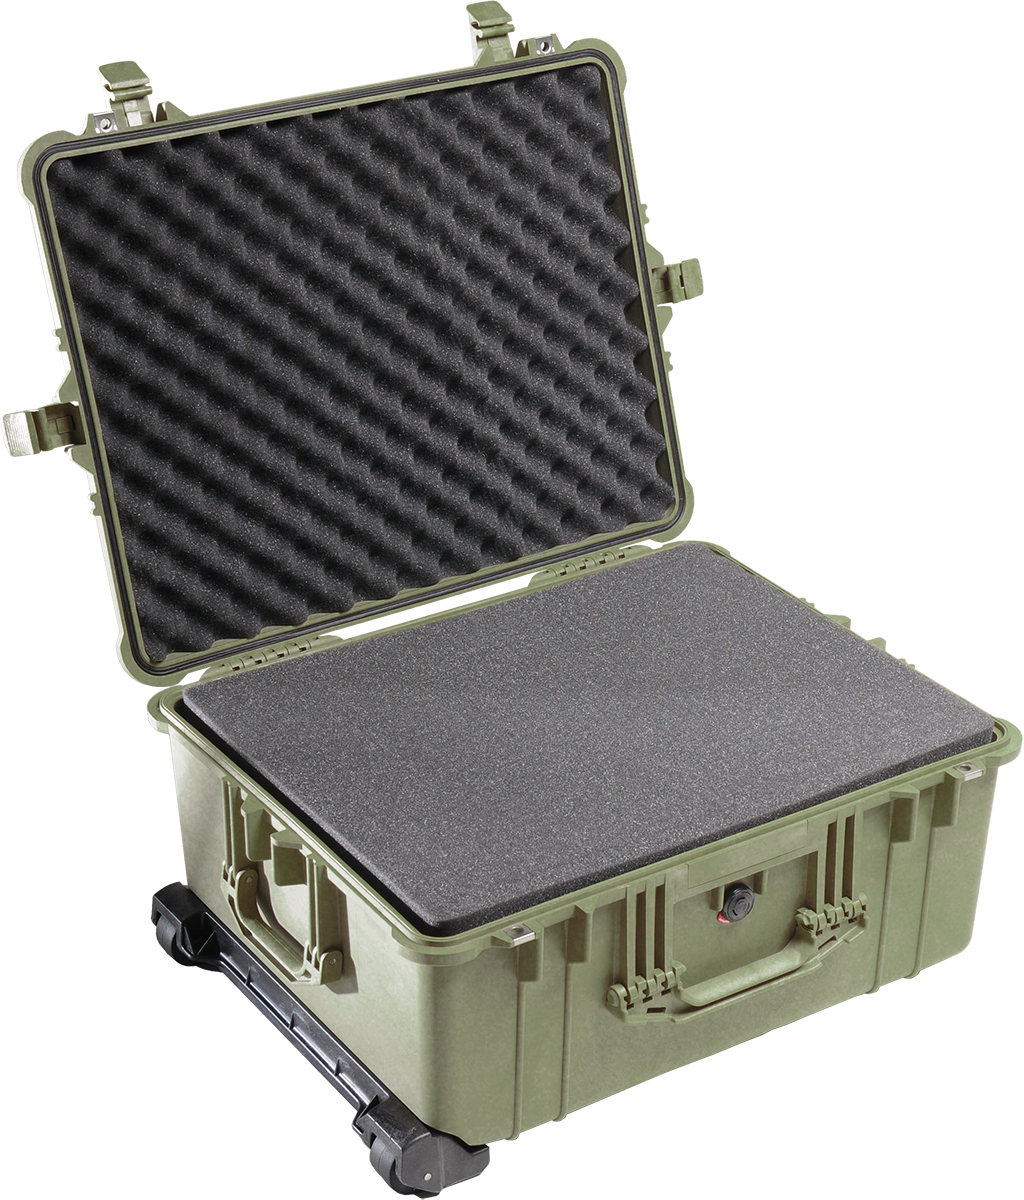 pelican 1610 green foam camera case